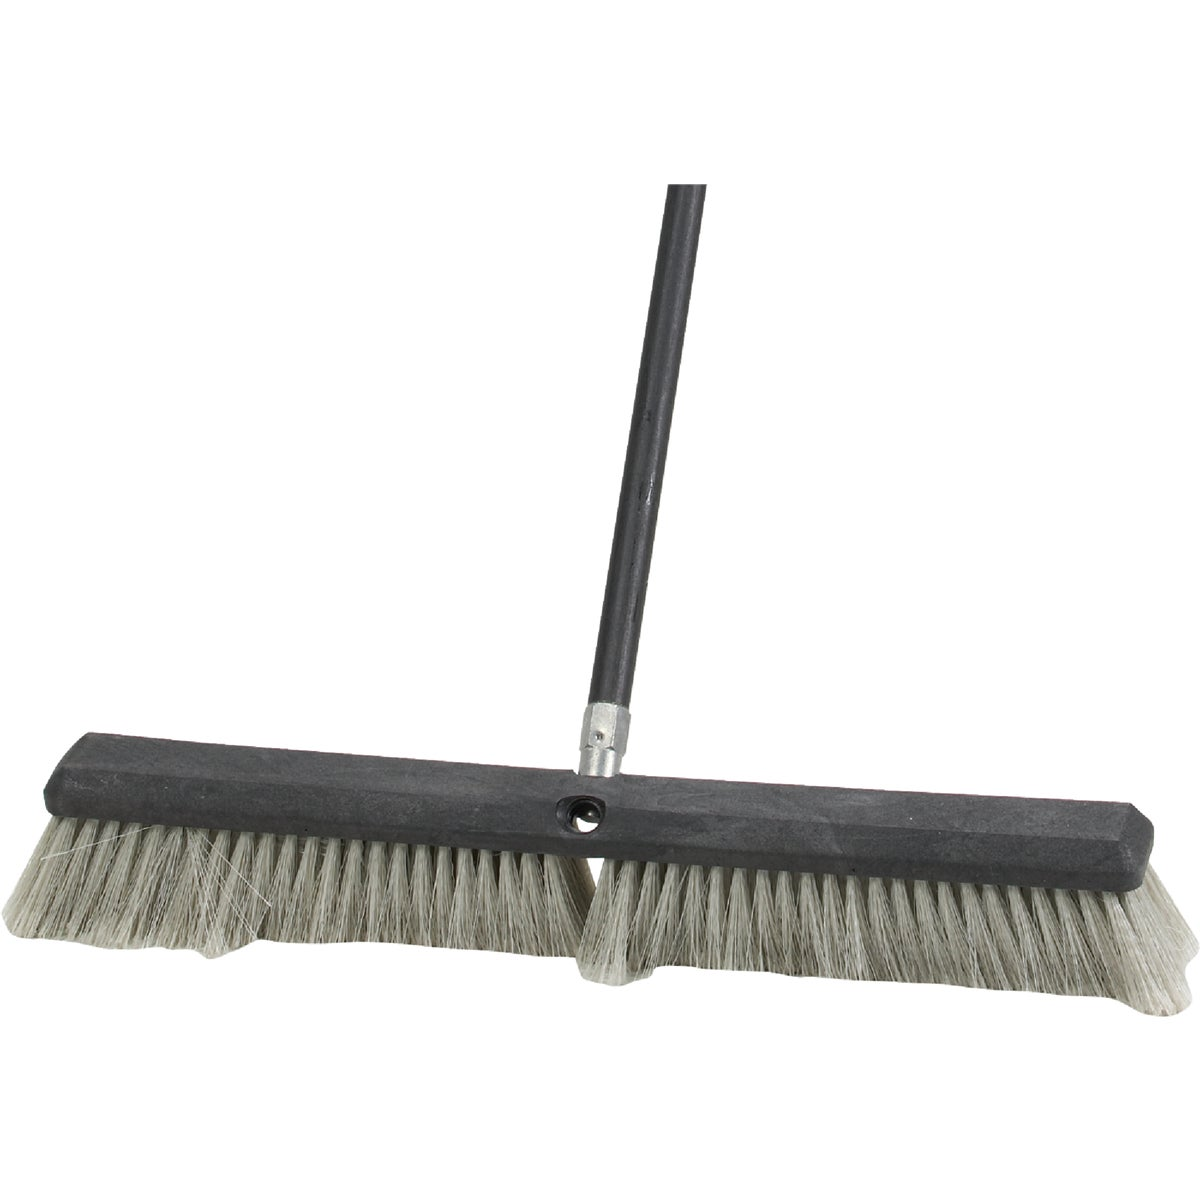 "24"" FINE PUSH BROOM - DIB89231 by D Q B Ind"